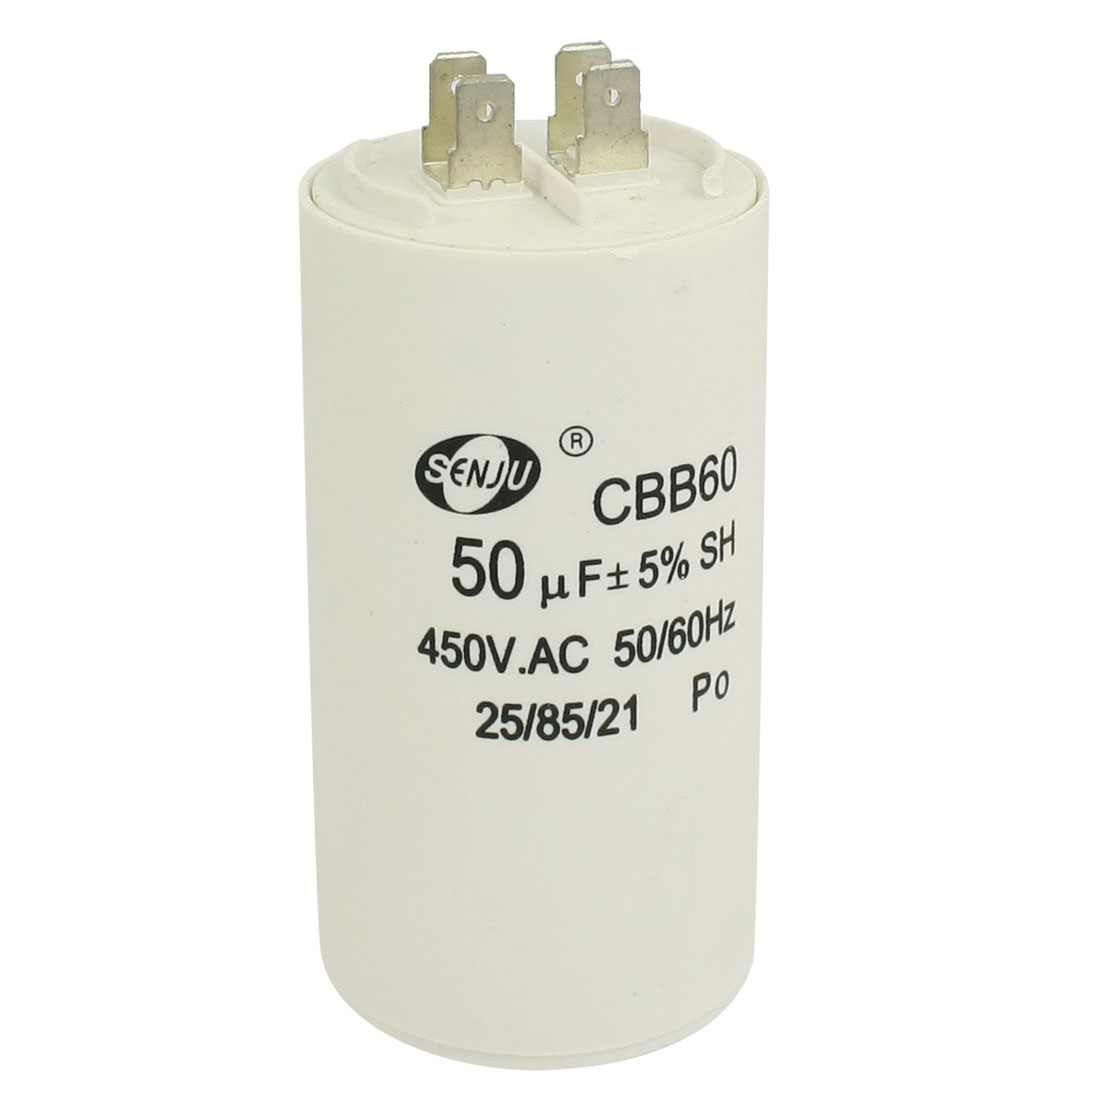 50uF 450VAC CBB60 Motor Running Capacitor White for Washing Machine